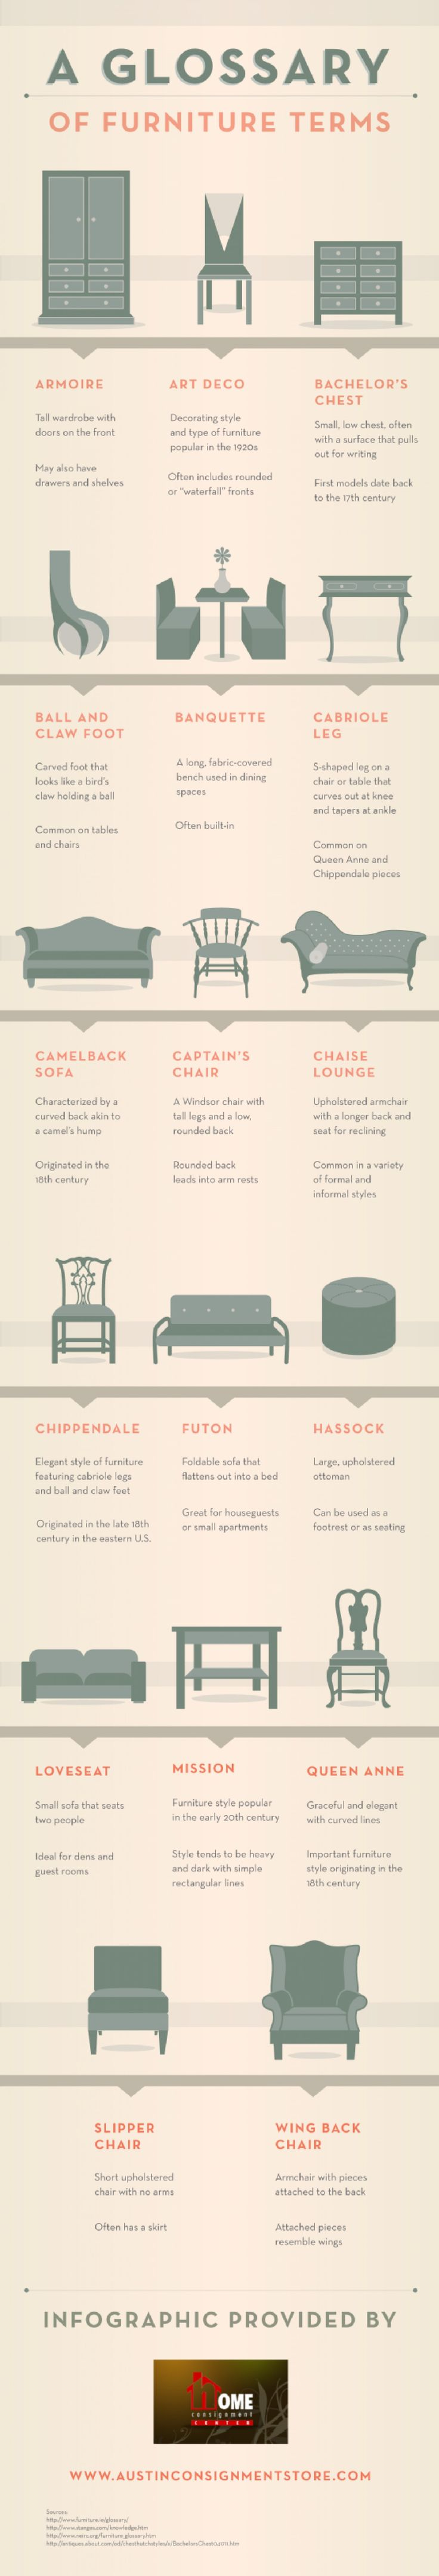 A Glossary of Furniture Terms: Interior Design, Terms Infographic, Design Basic, Decorating - 65 Interior Design Terms You Might Not Know